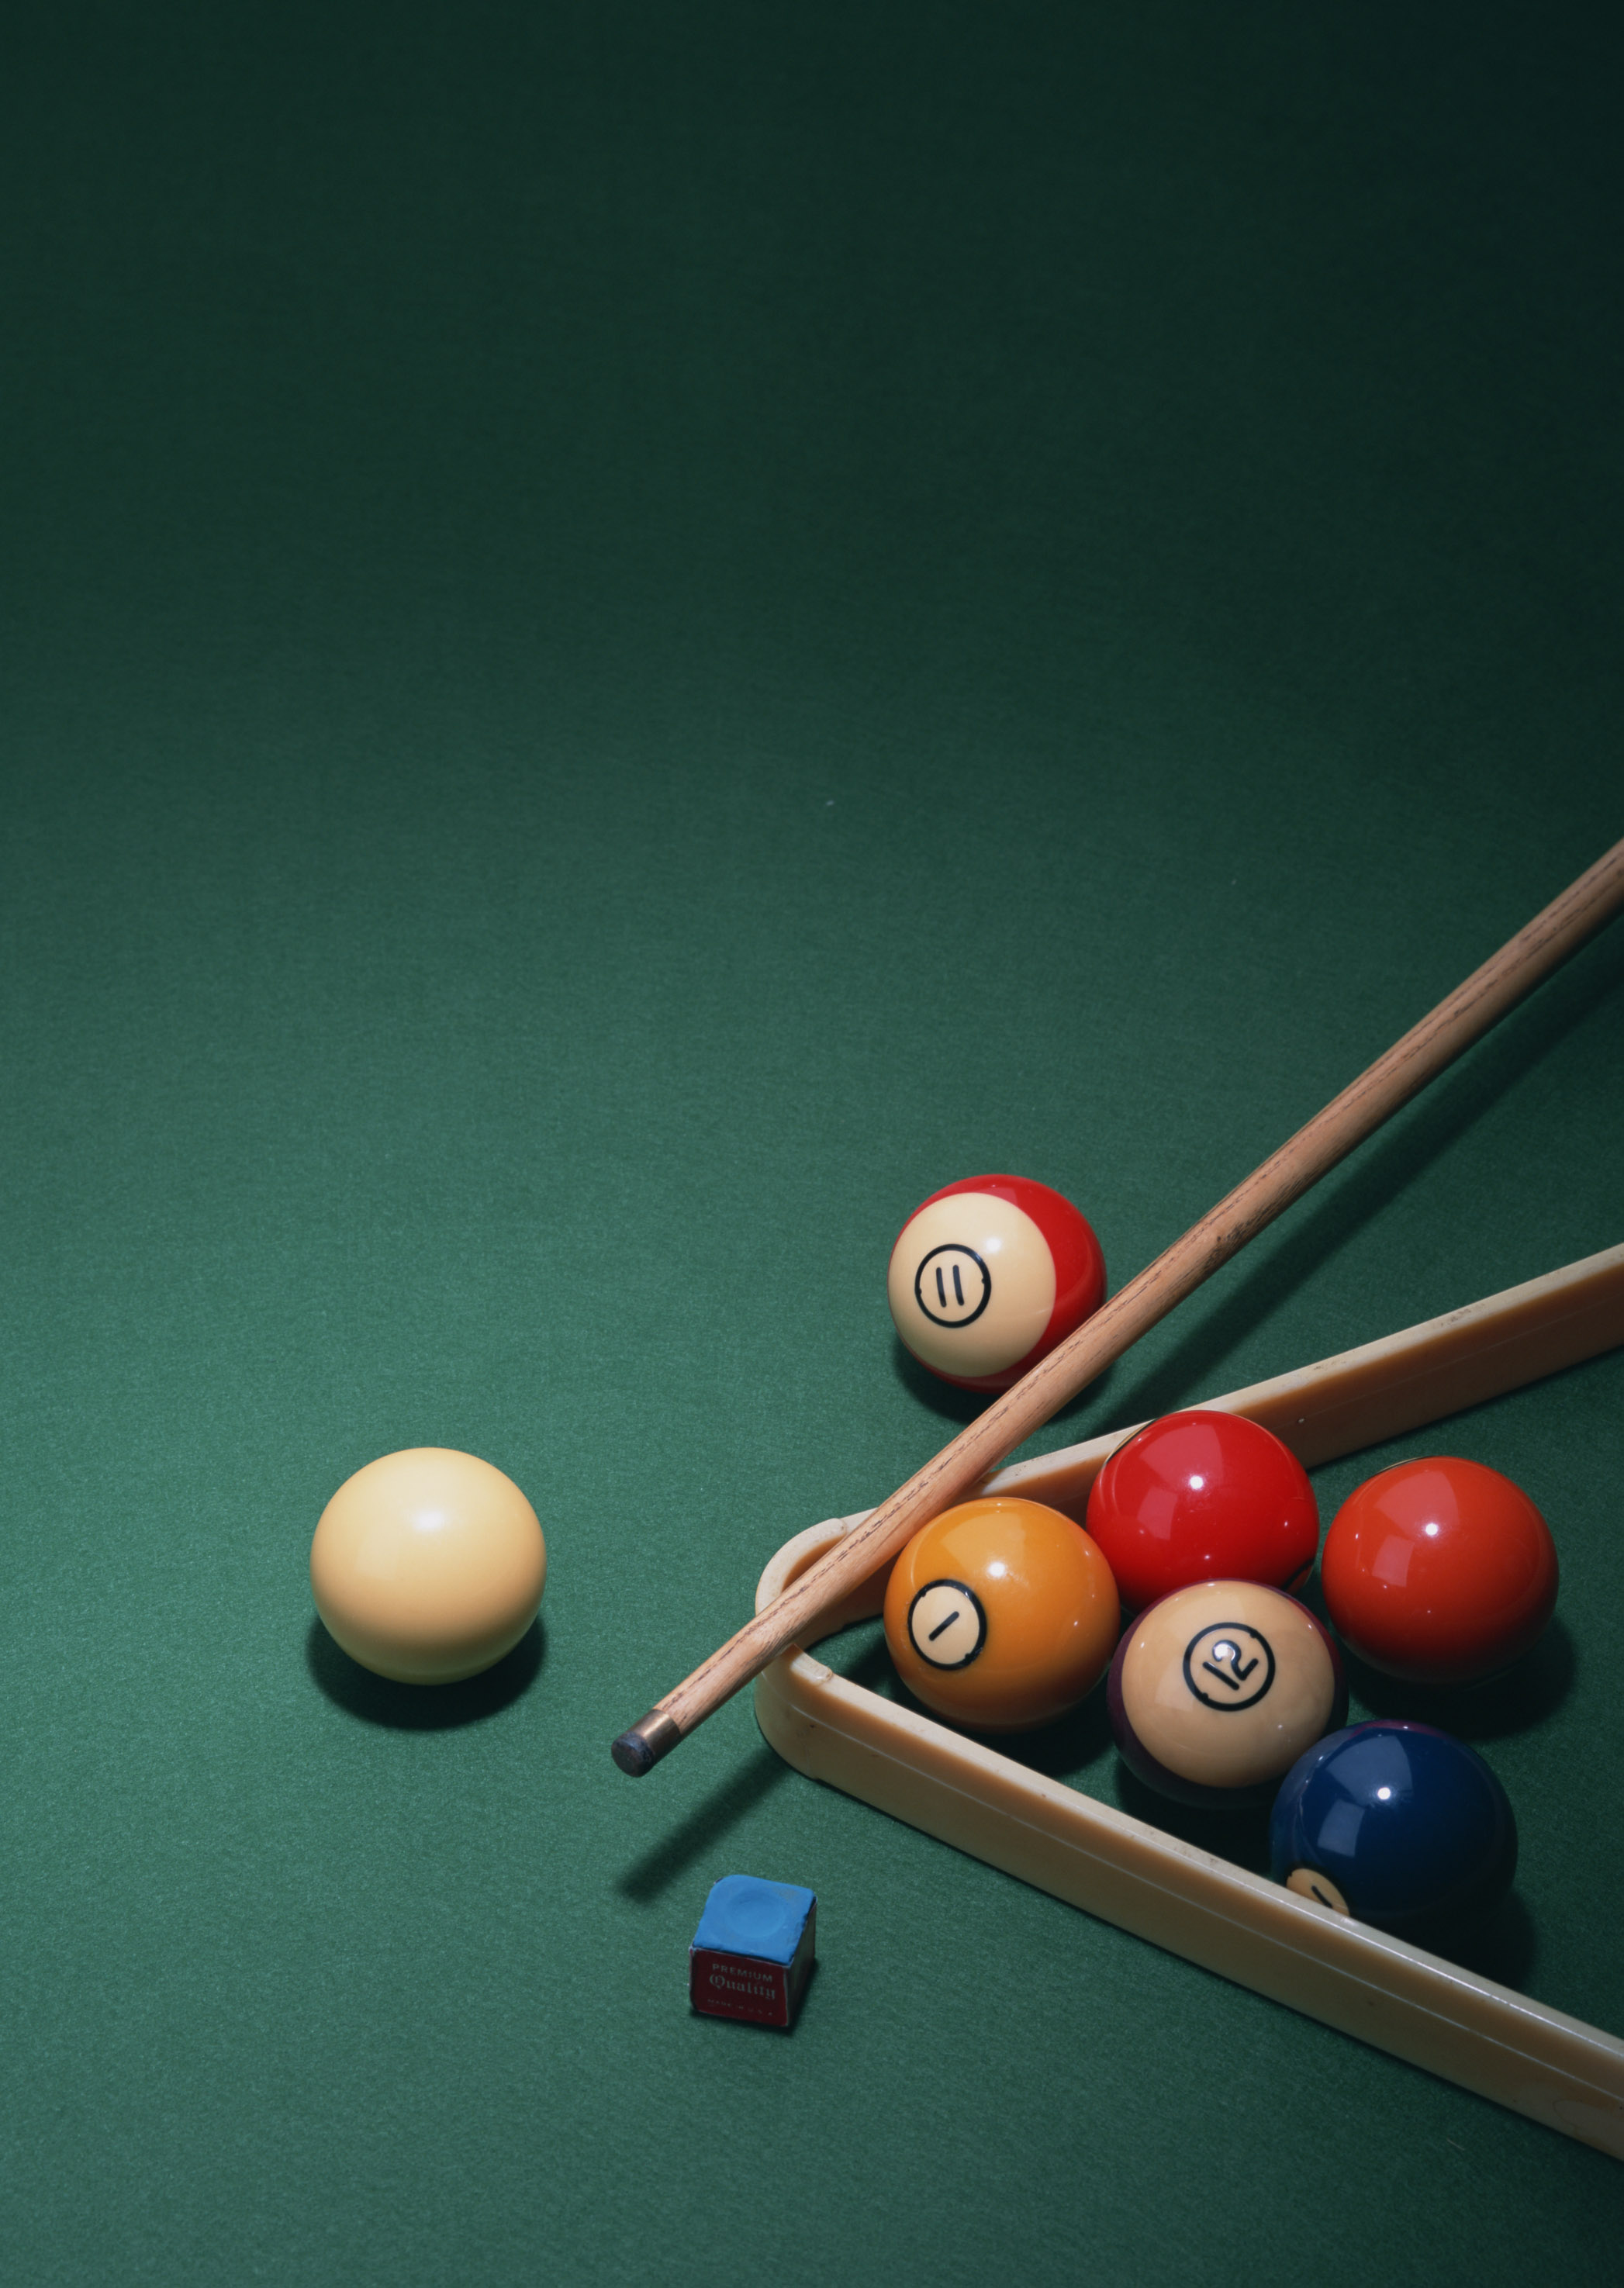 pool table table furniture game equipment background  furnishing  ball  game background image